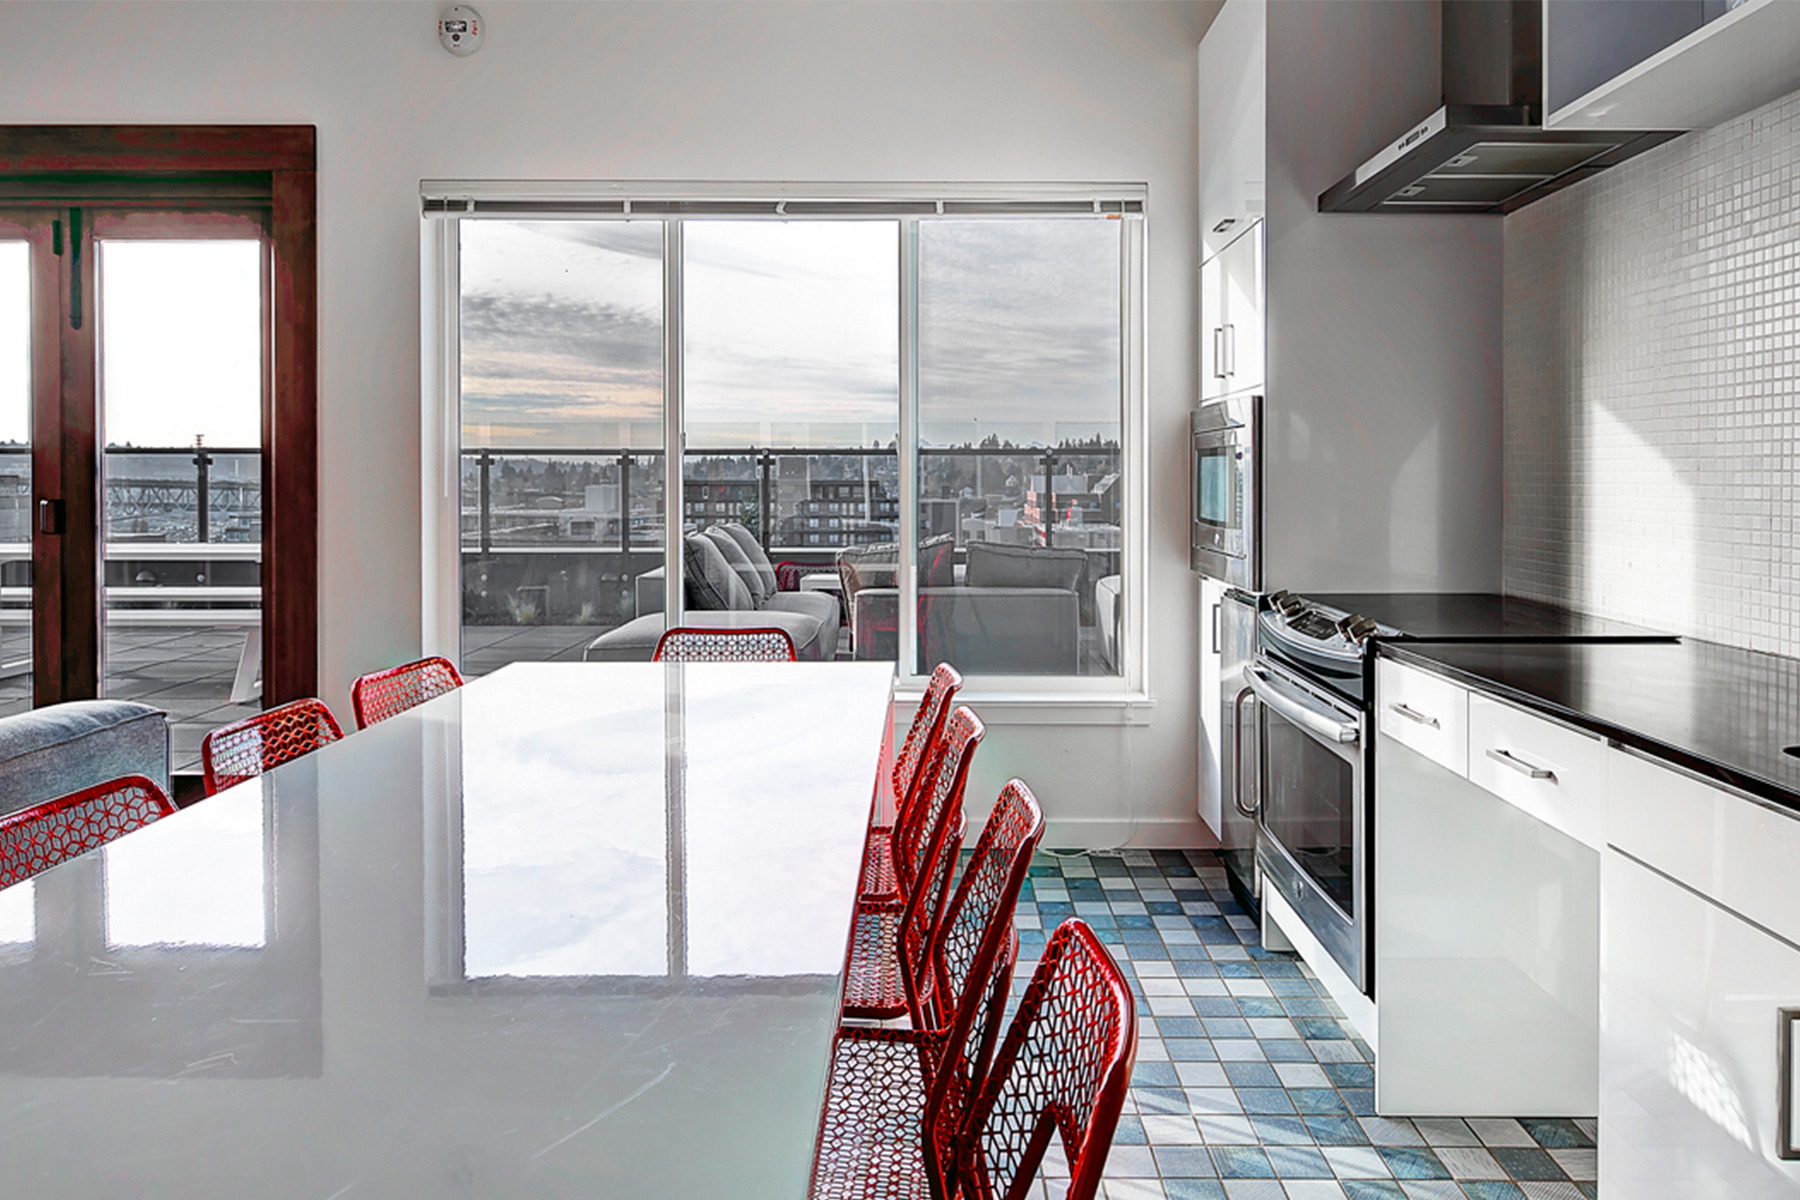 04 Interior-Rooftop-Kitchen-Lounge-01_Parsonage.jpg